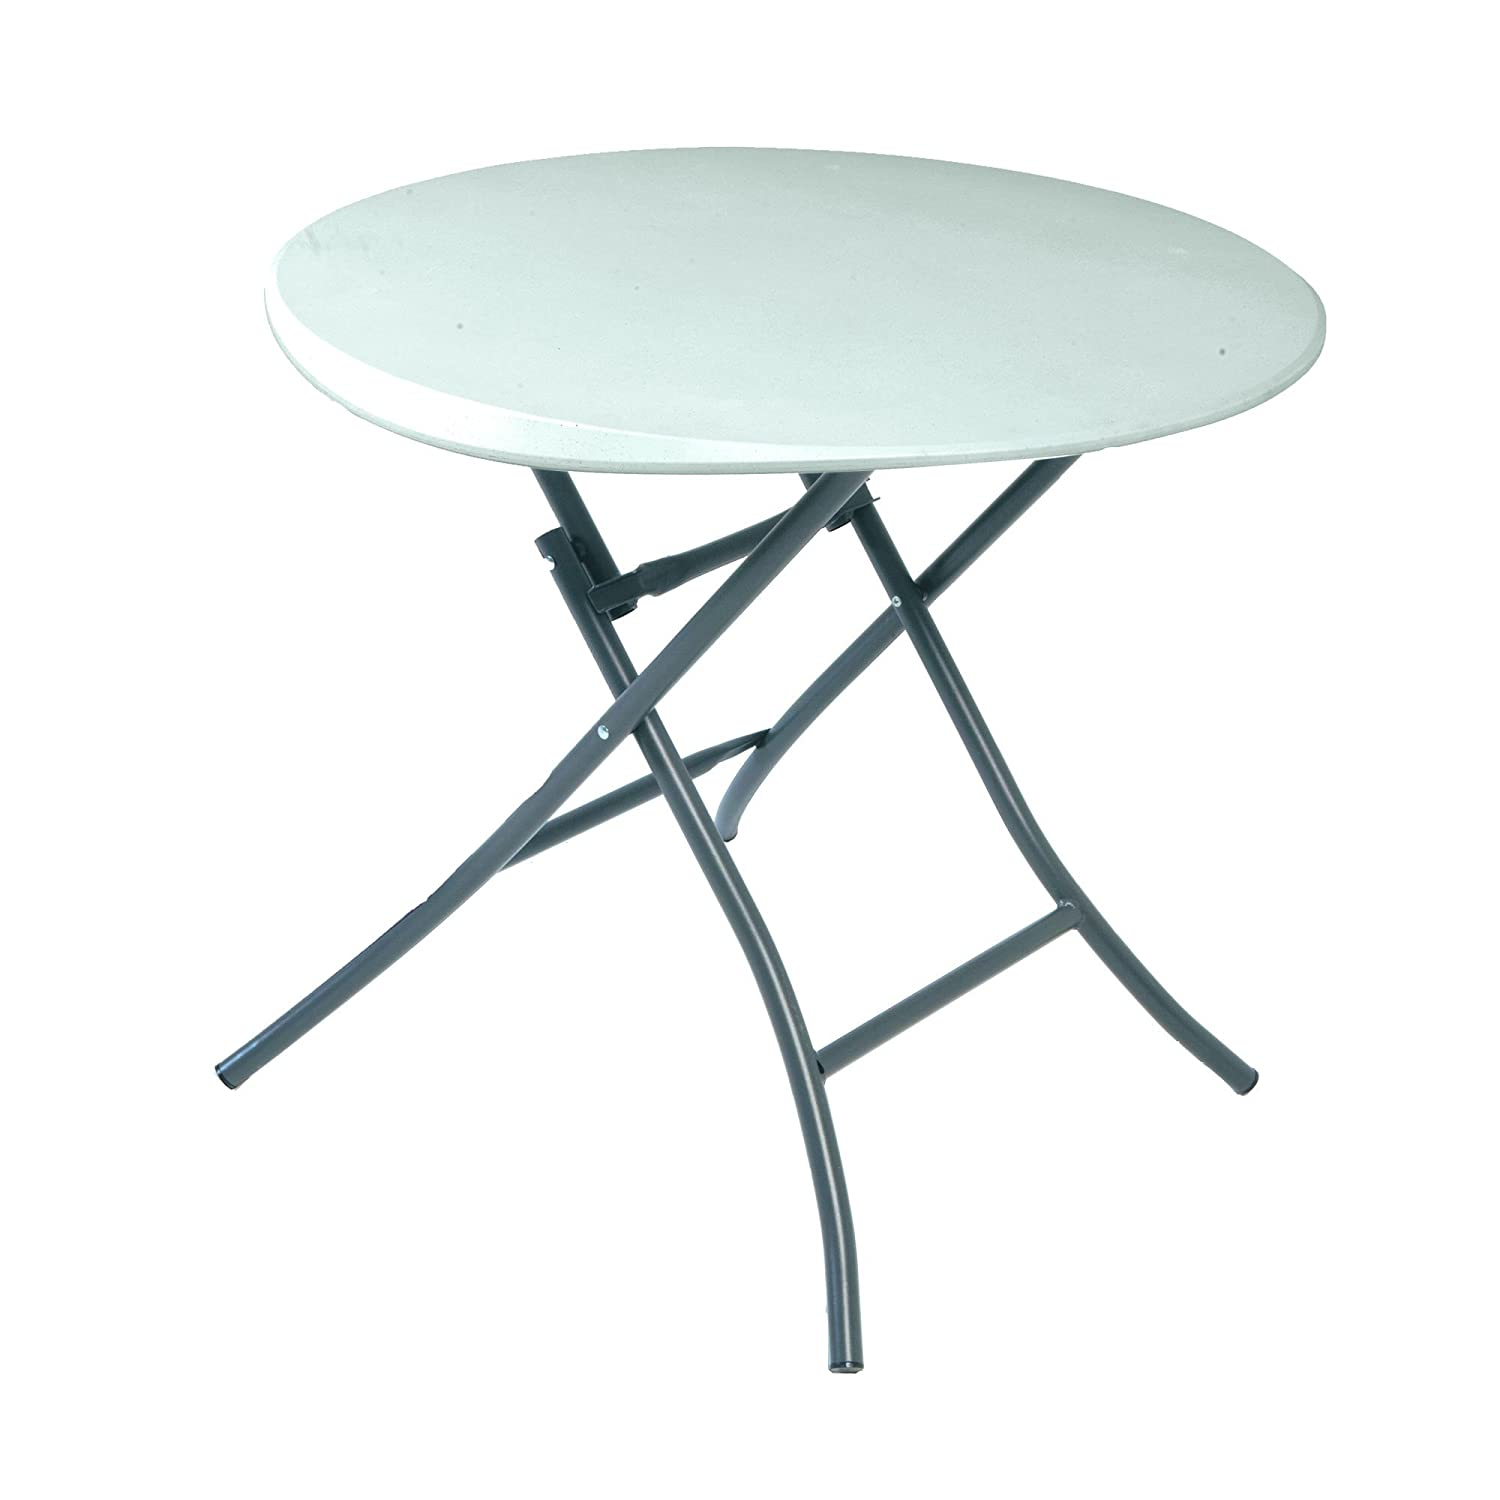 Lifetime 2.7 ft (0.83 m) Round Folding Table - White 80423